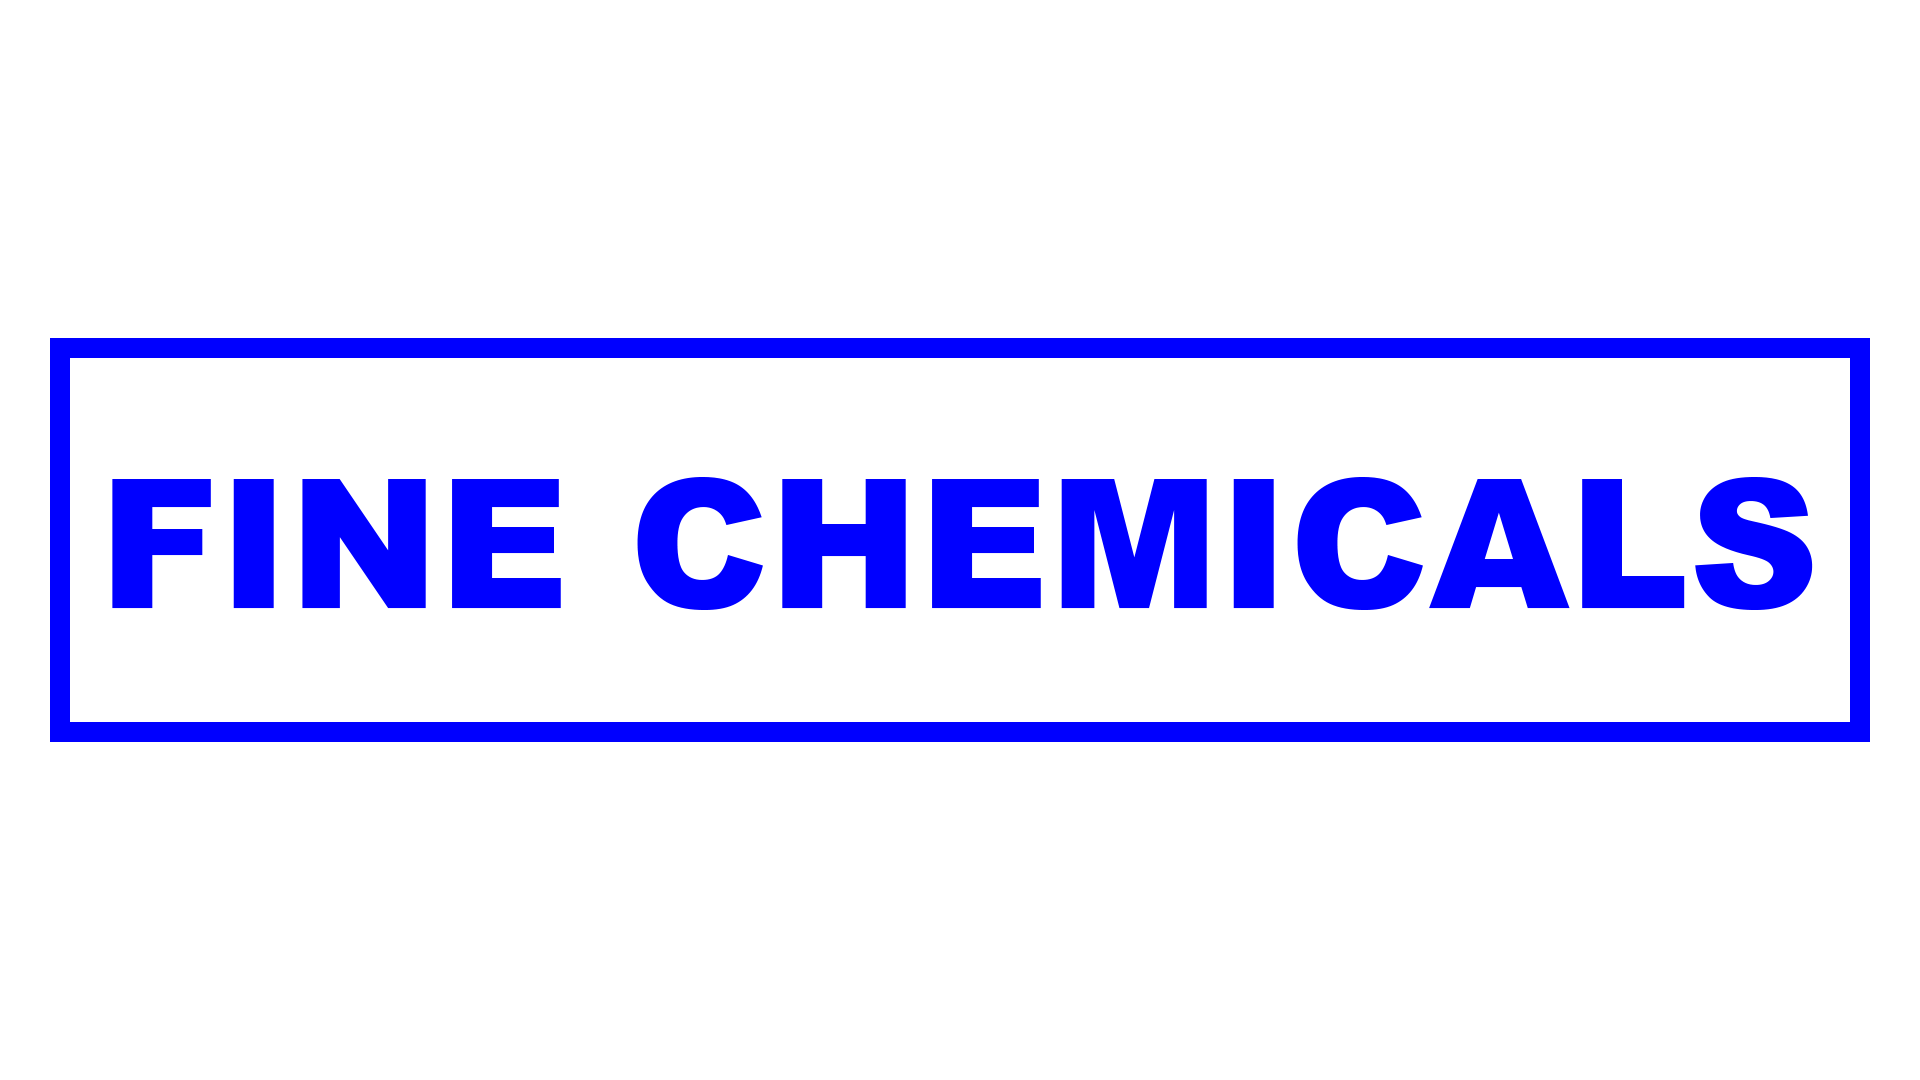 Fine Chemicals logo.png